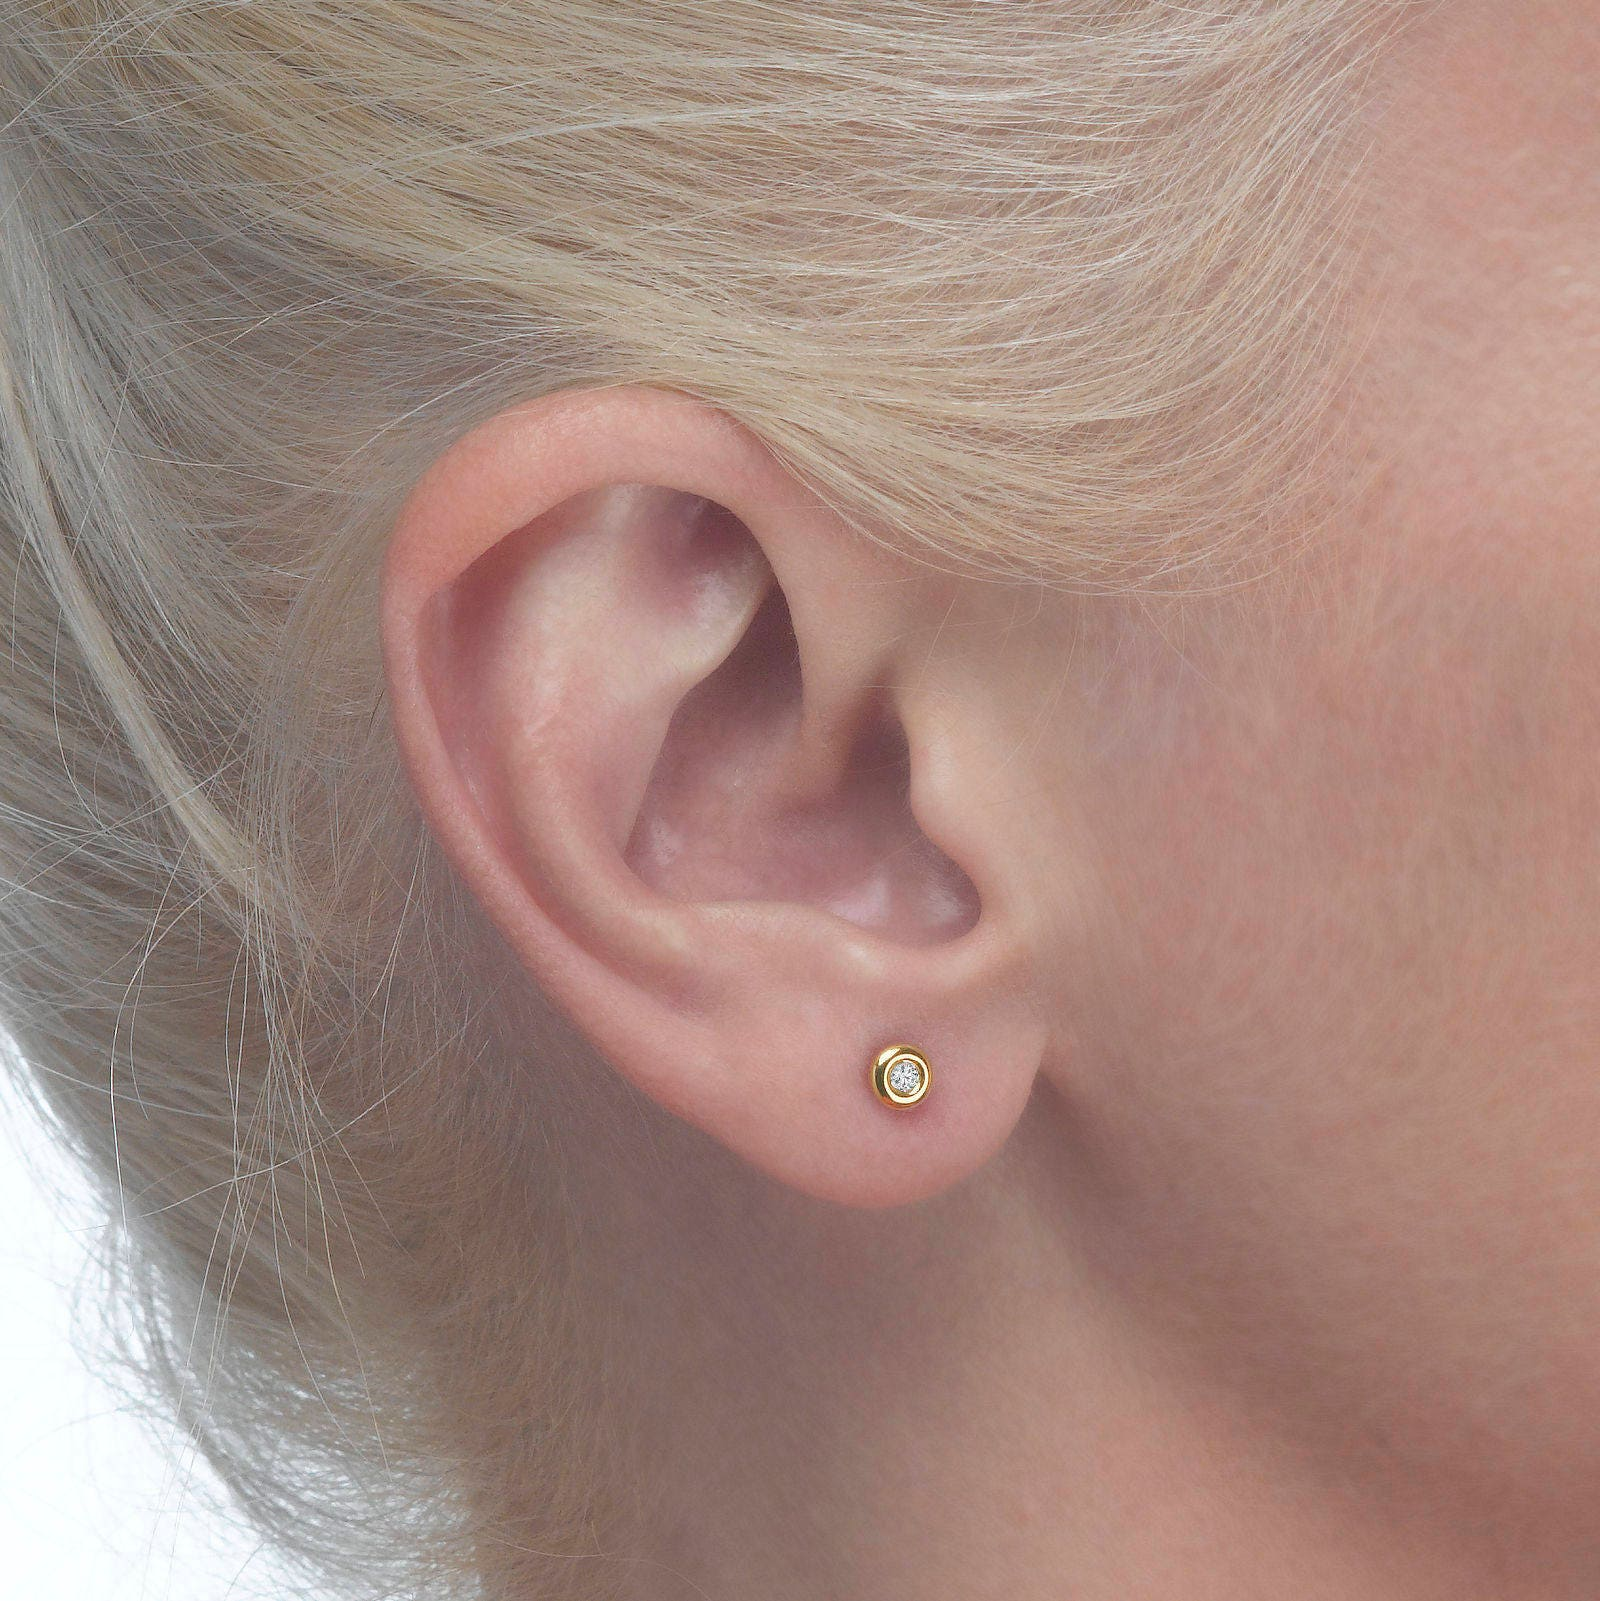 leaf by fern com earrings original delicate lisaangeljewellery notonthehighstreet product lisa angel stud